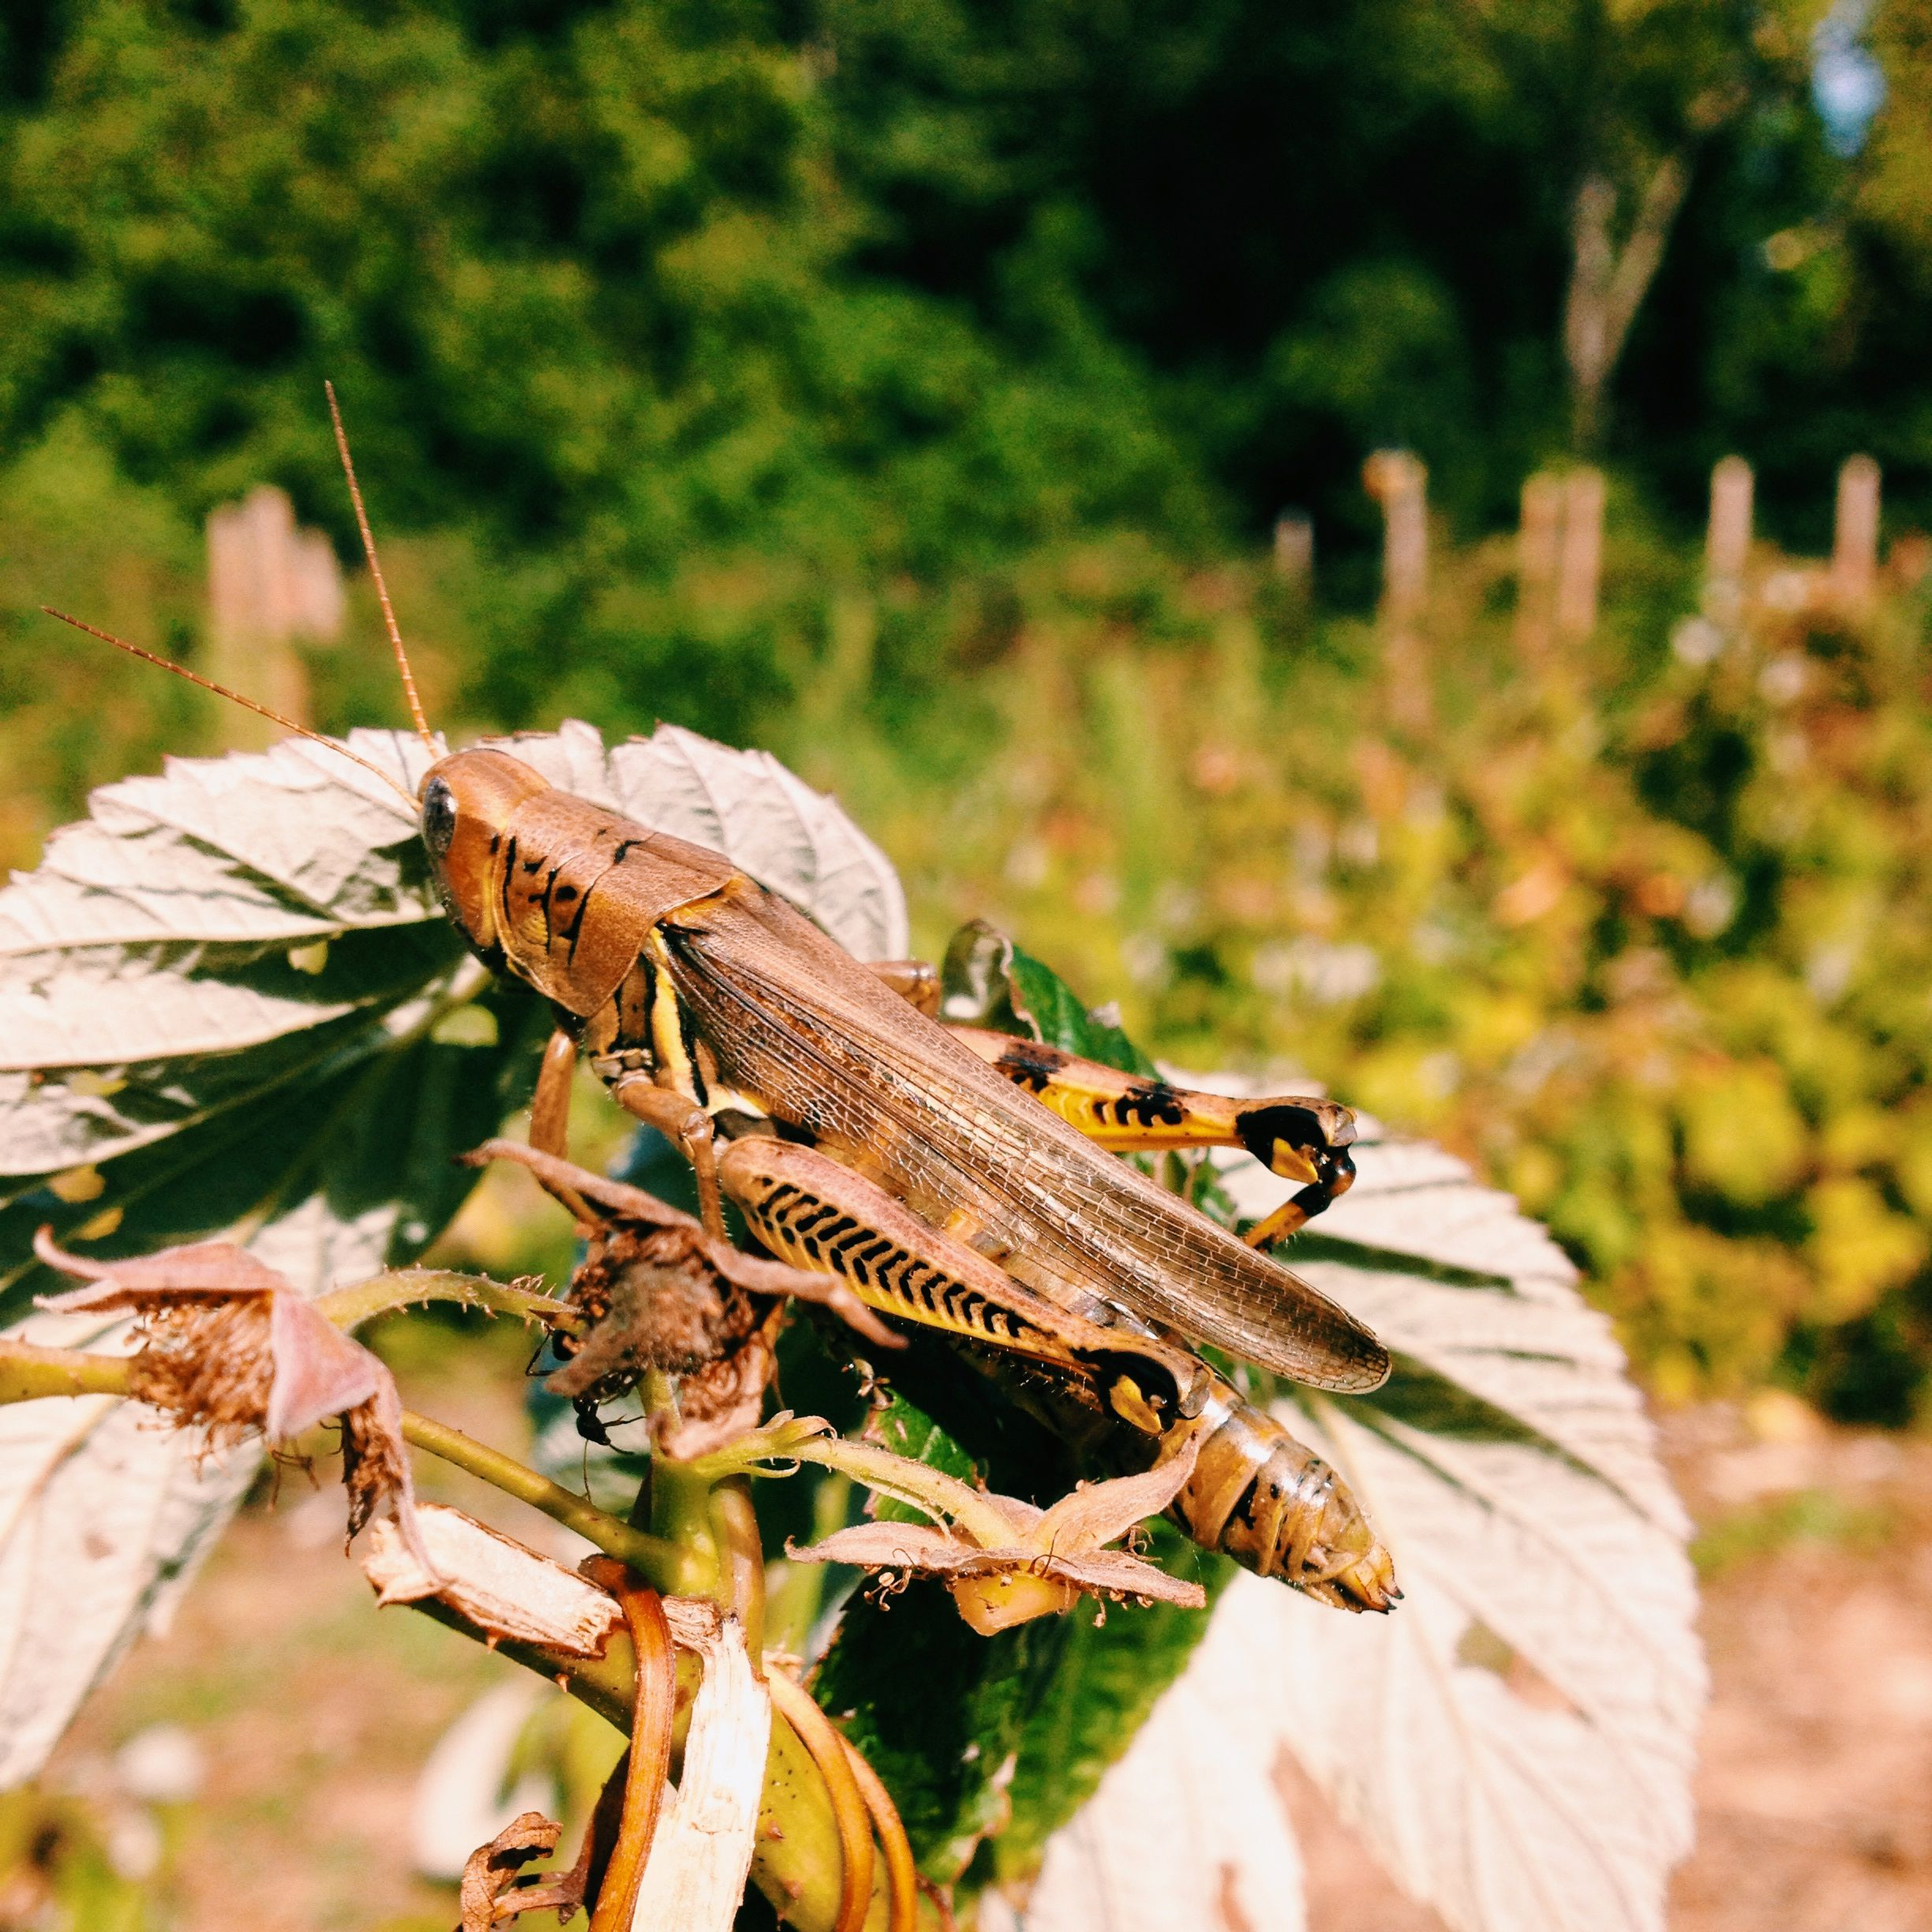 Grasshopper is blocking me from the raspberries! What the heck guy!